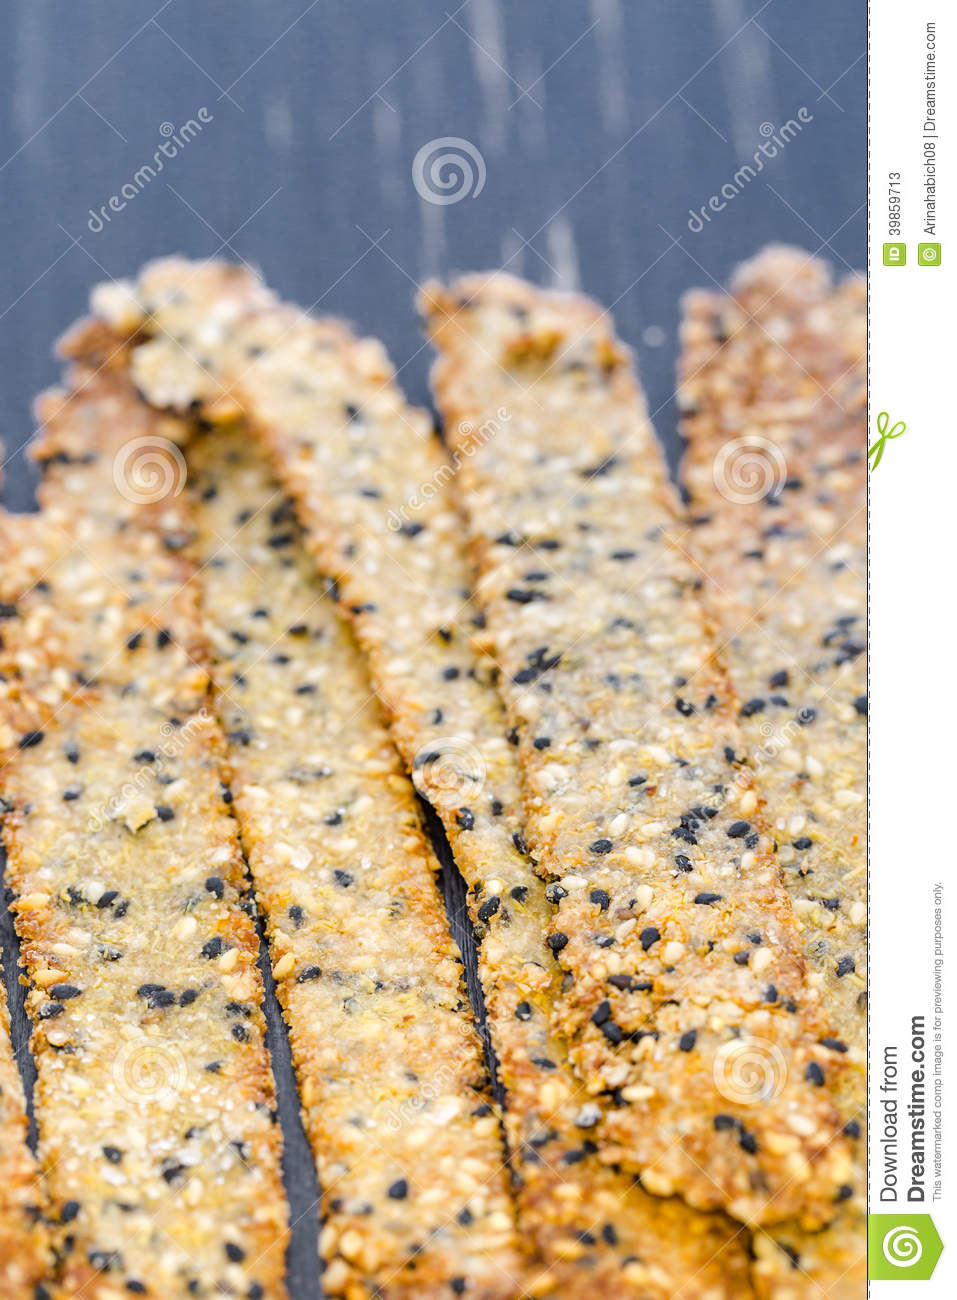 quinoa crackers with seeds - Gluten Free Girl and the Chef